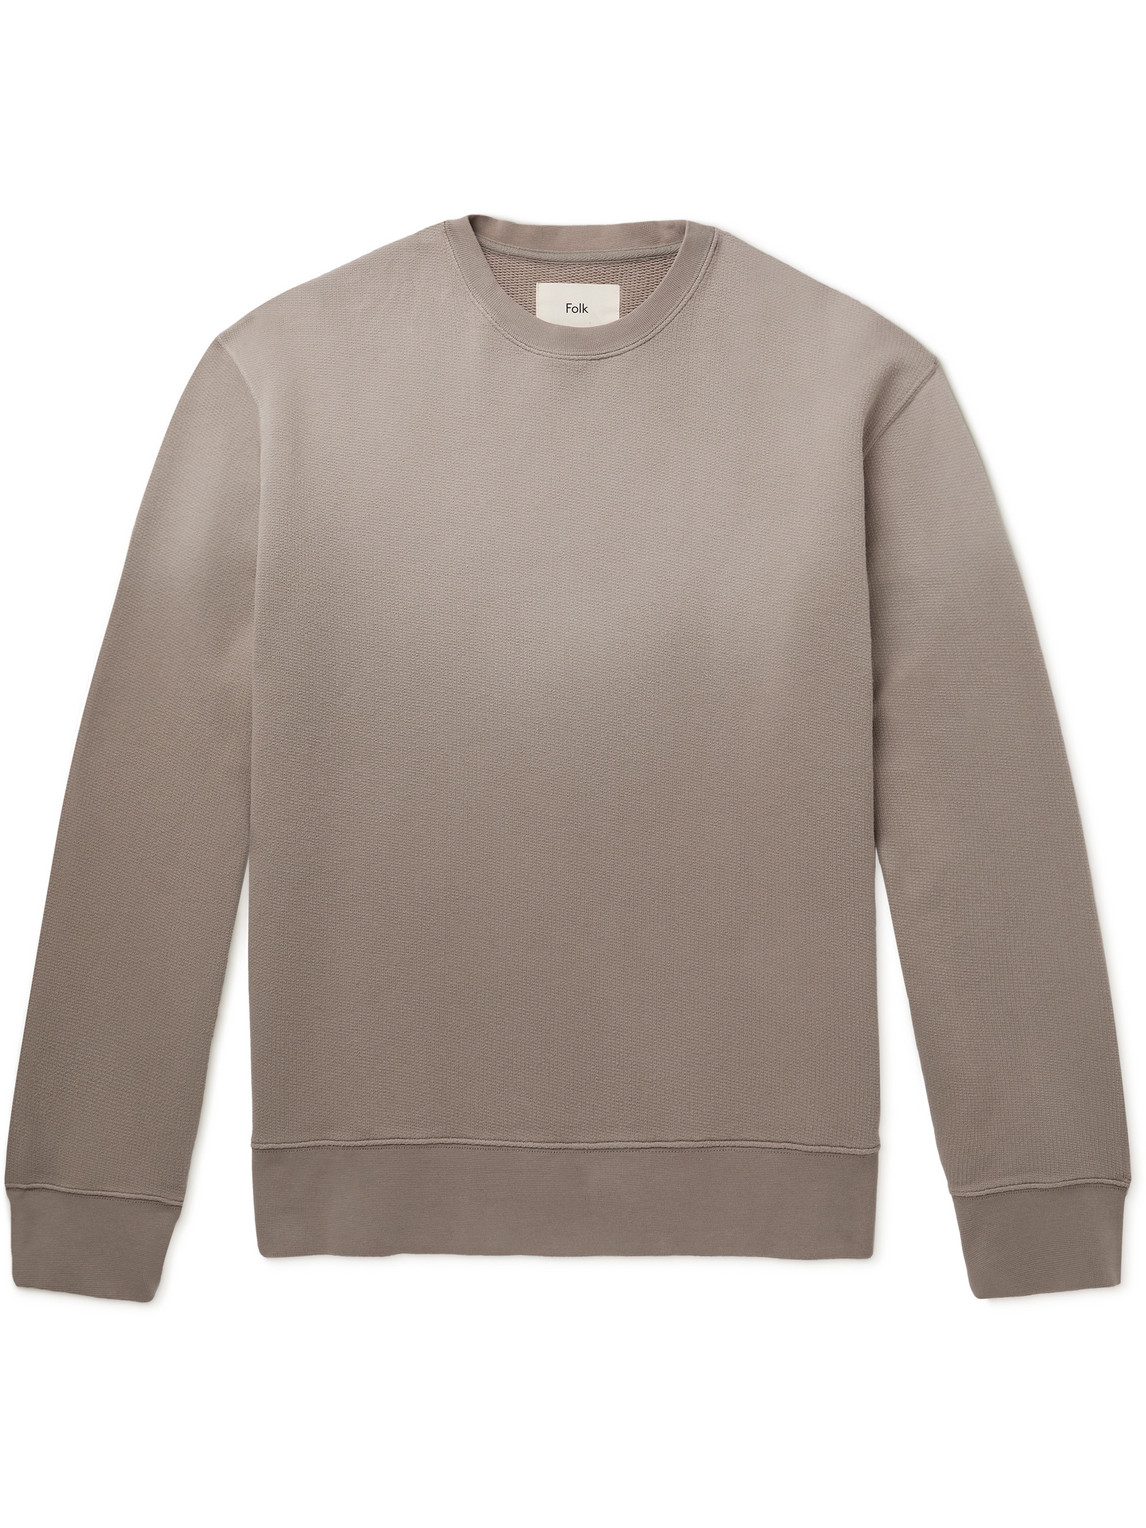 Folk Dégradé Loopback Cotton-jersey Sweatshirt In Neutrals